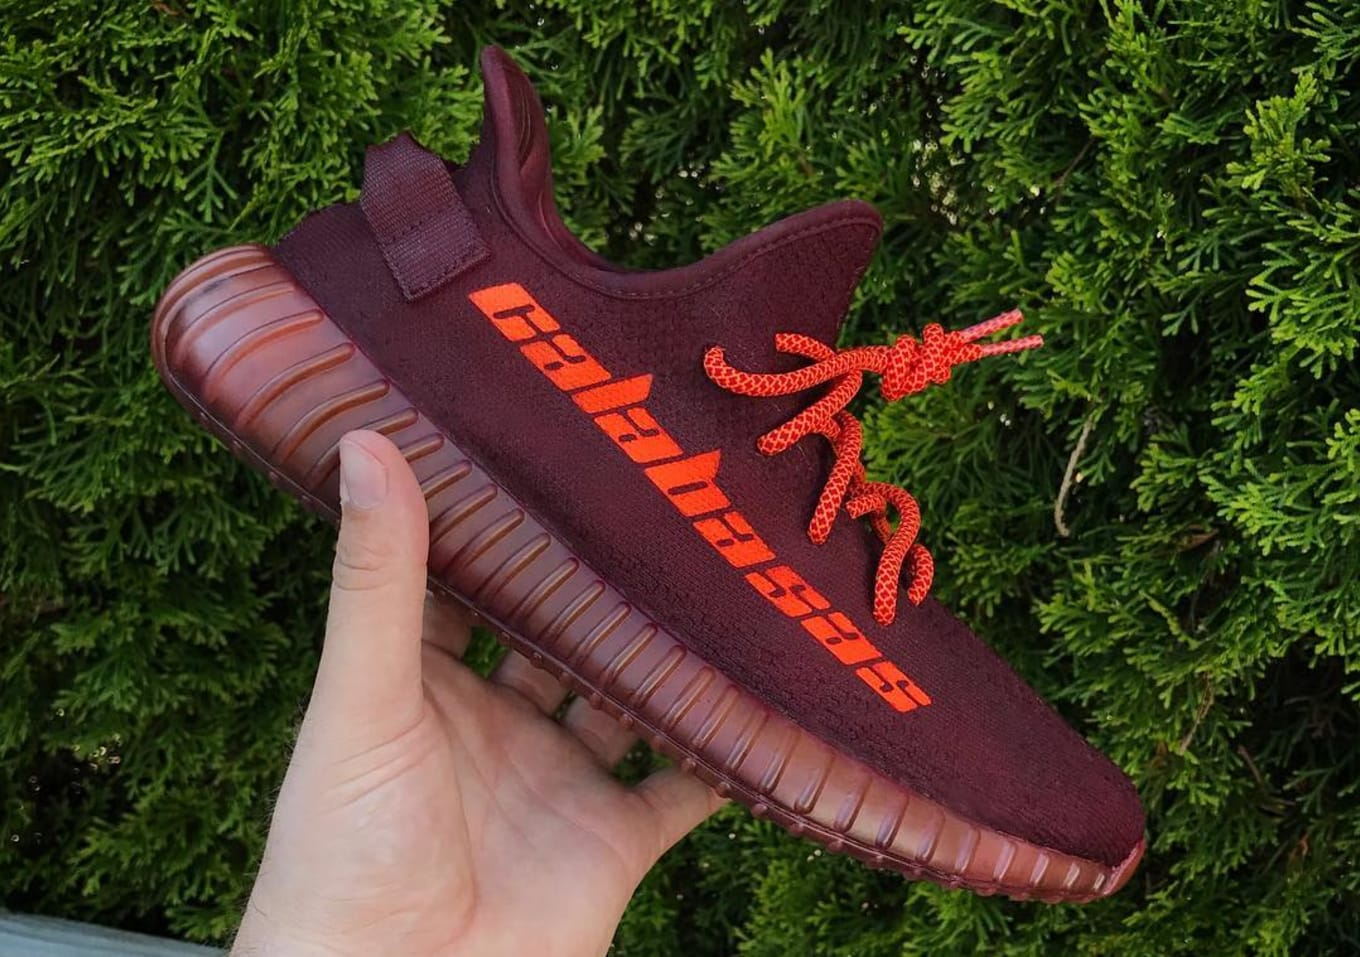 a28360d1f Adidas Yeezy Boost 350 Calabasas Customs by Mache